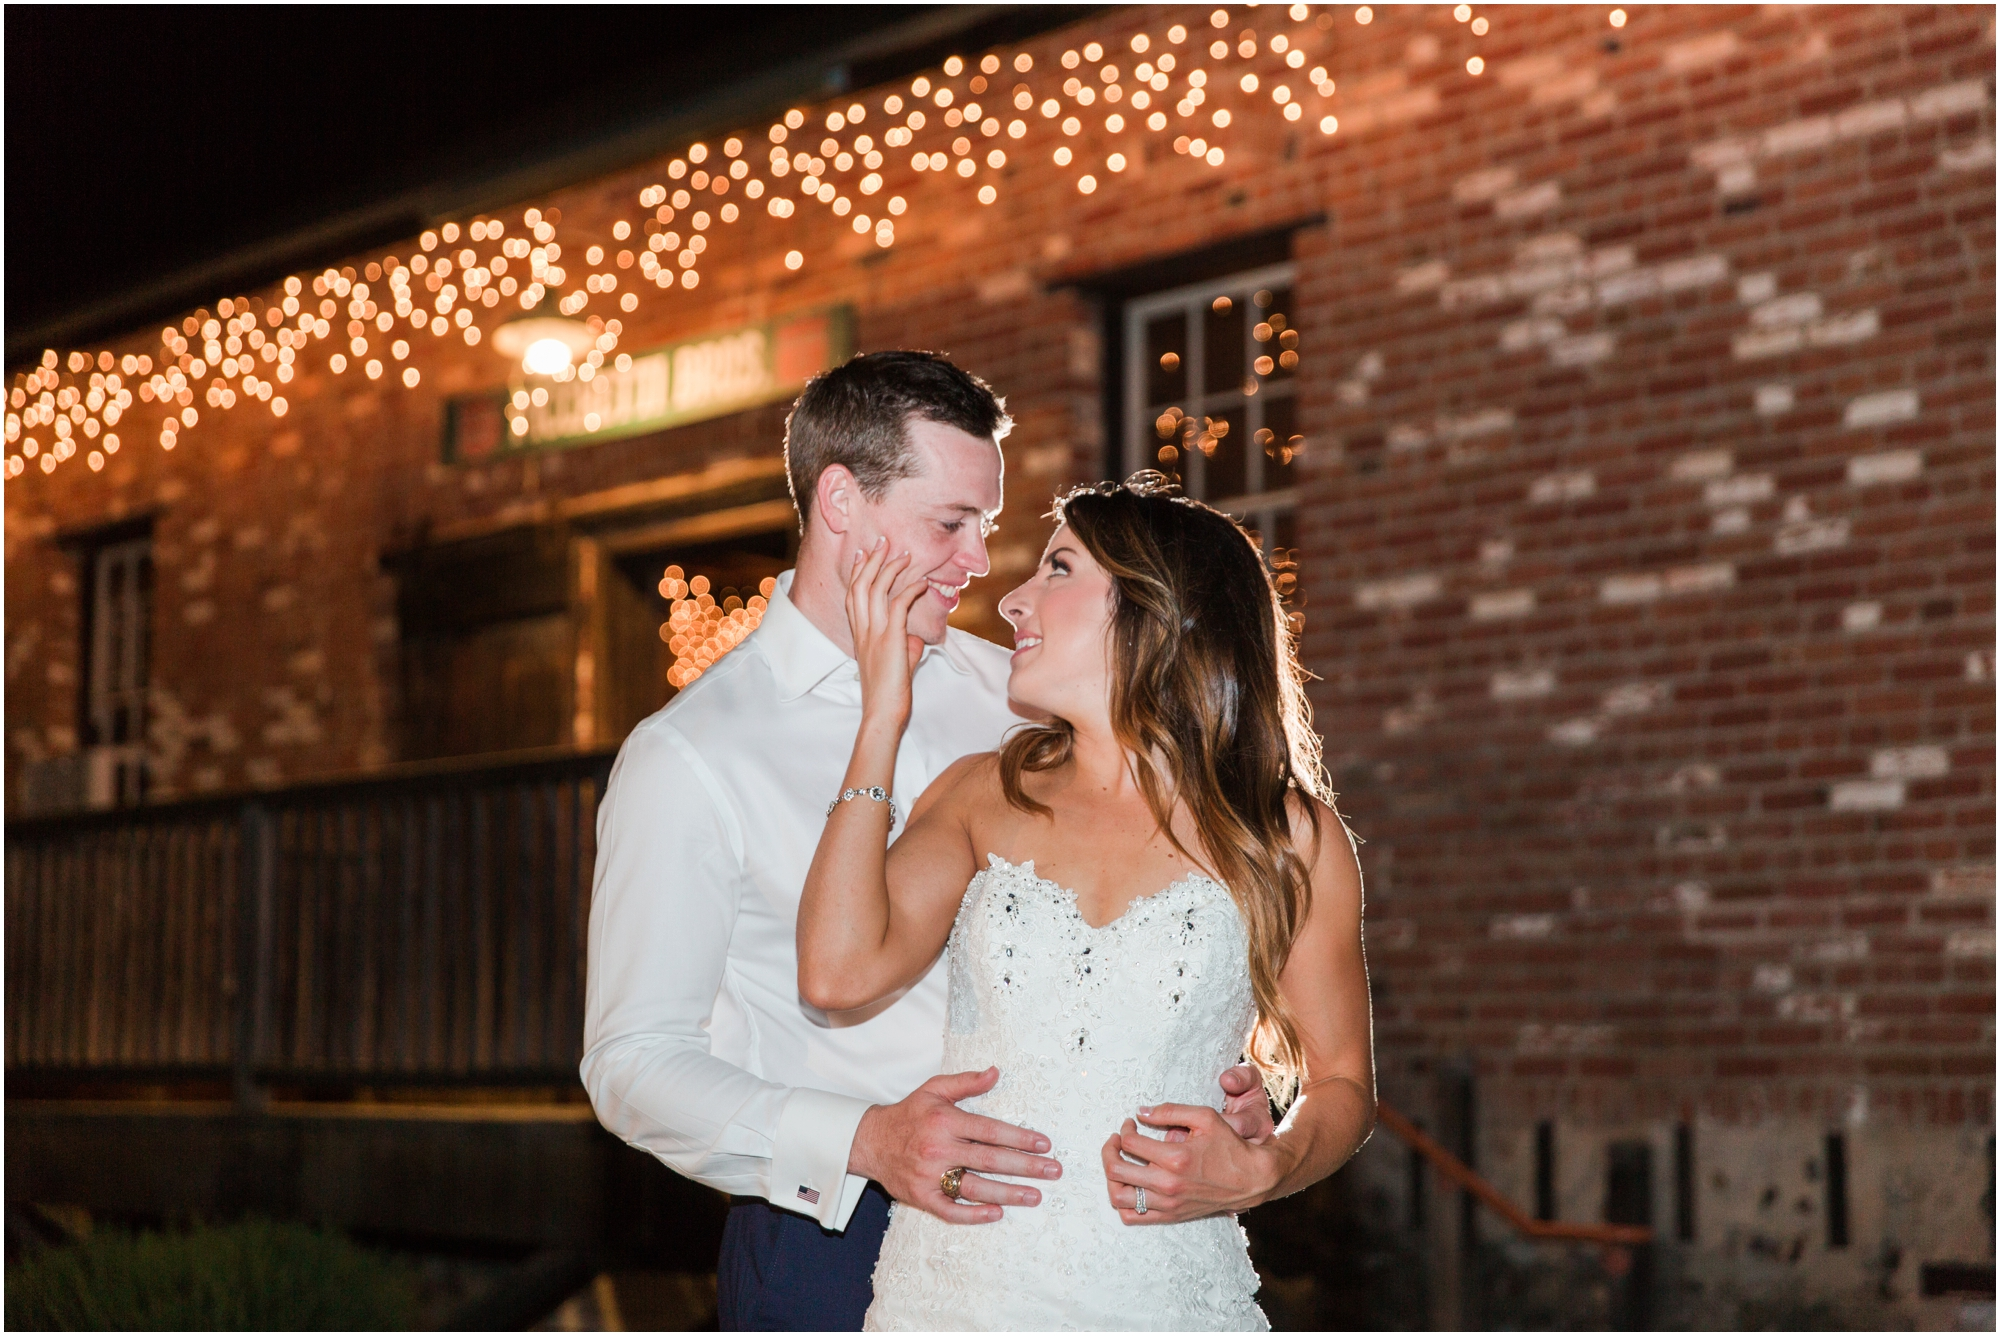 Picchetti Winery wedding pictures by Briana Calderon Photography_2086.jpg